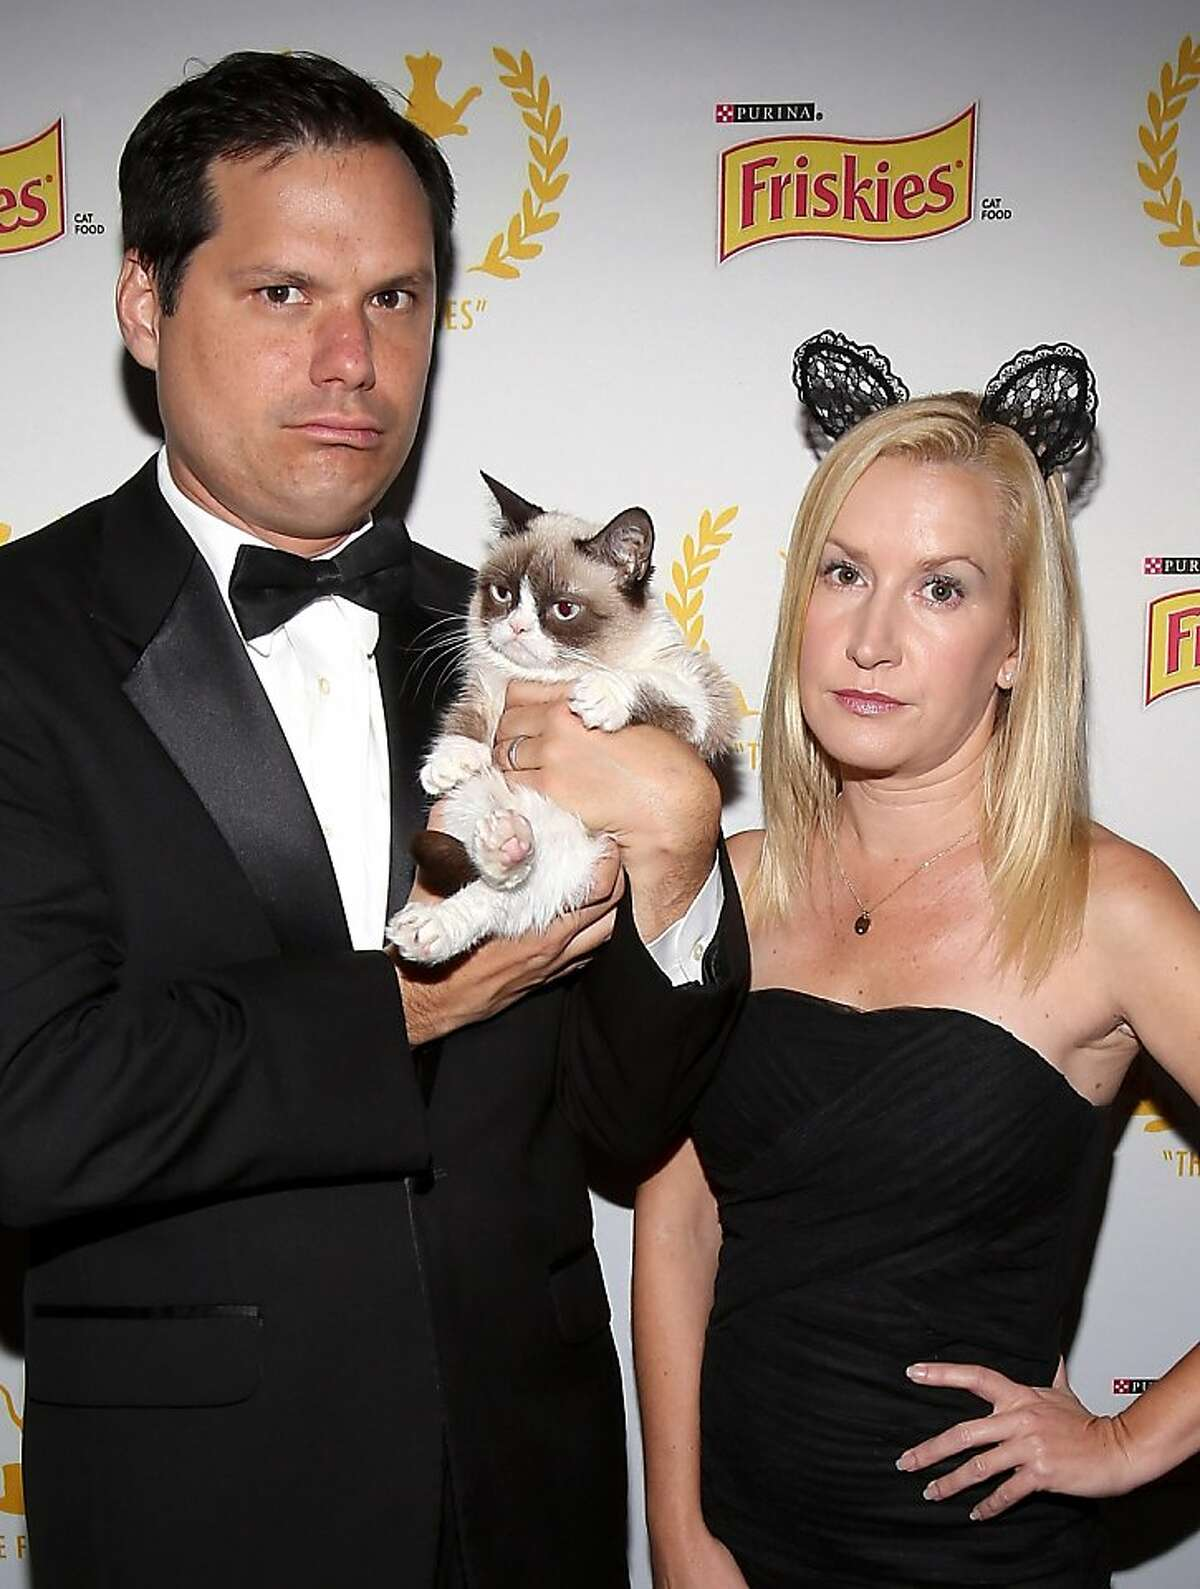 Did I shed on you? Good! At Friskies 2013, Grumpy Cat's mood rubs off on actors Michael Ian Black and Angela Kinsey. As does her fur.